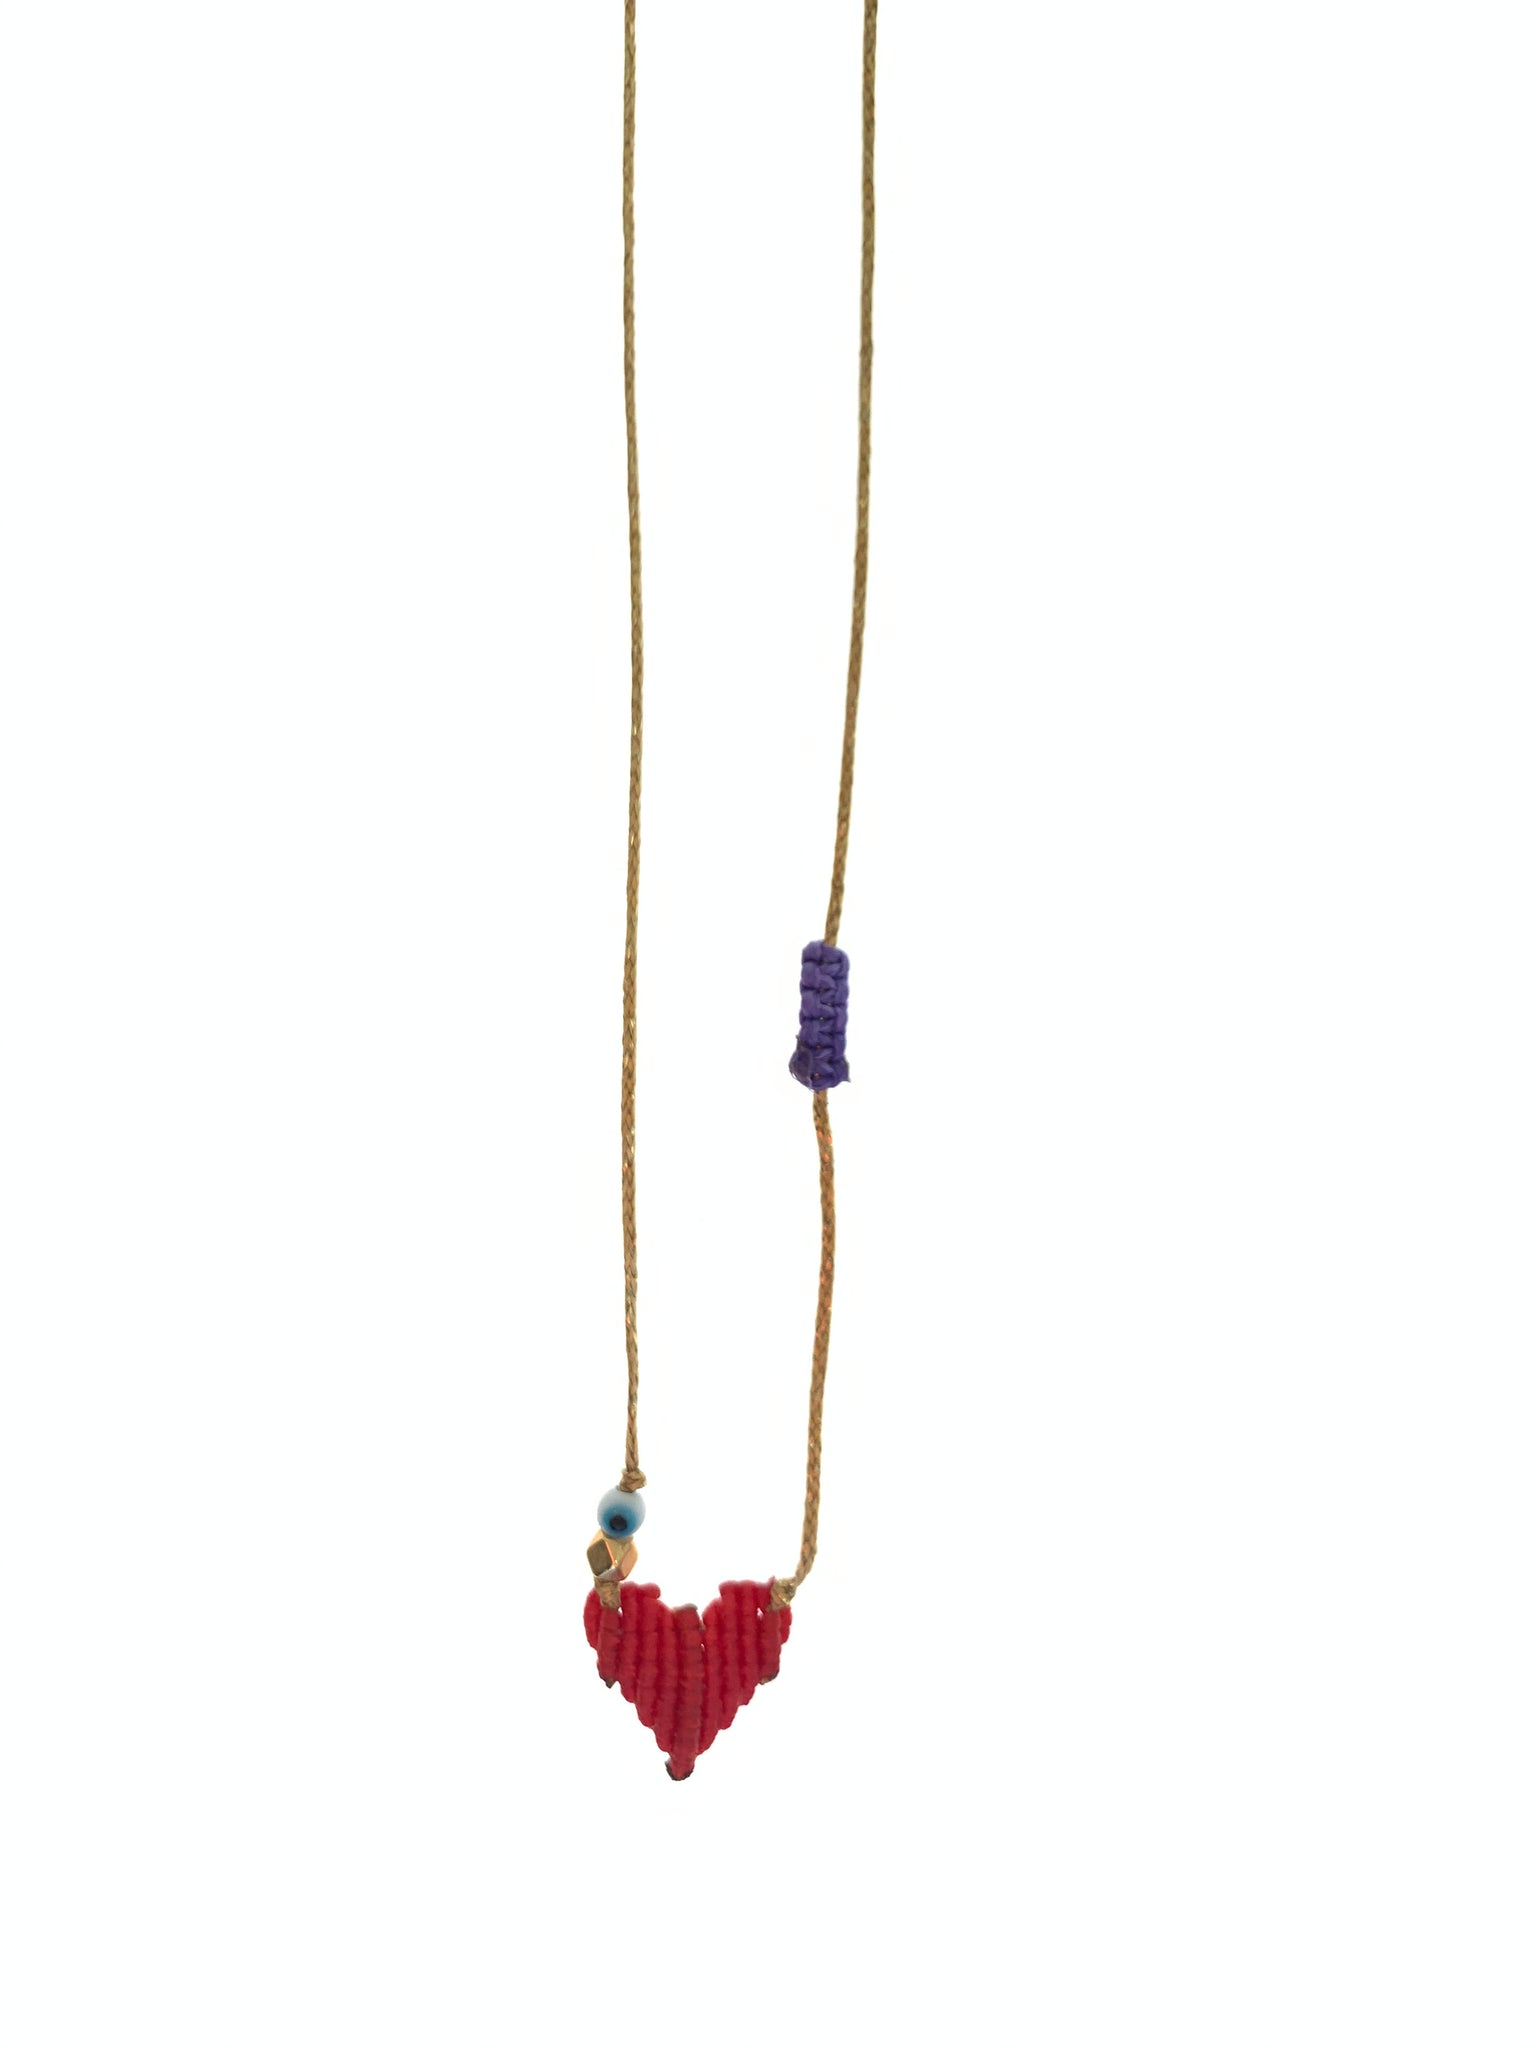 Red heart on adjustable necklace selling for a cause